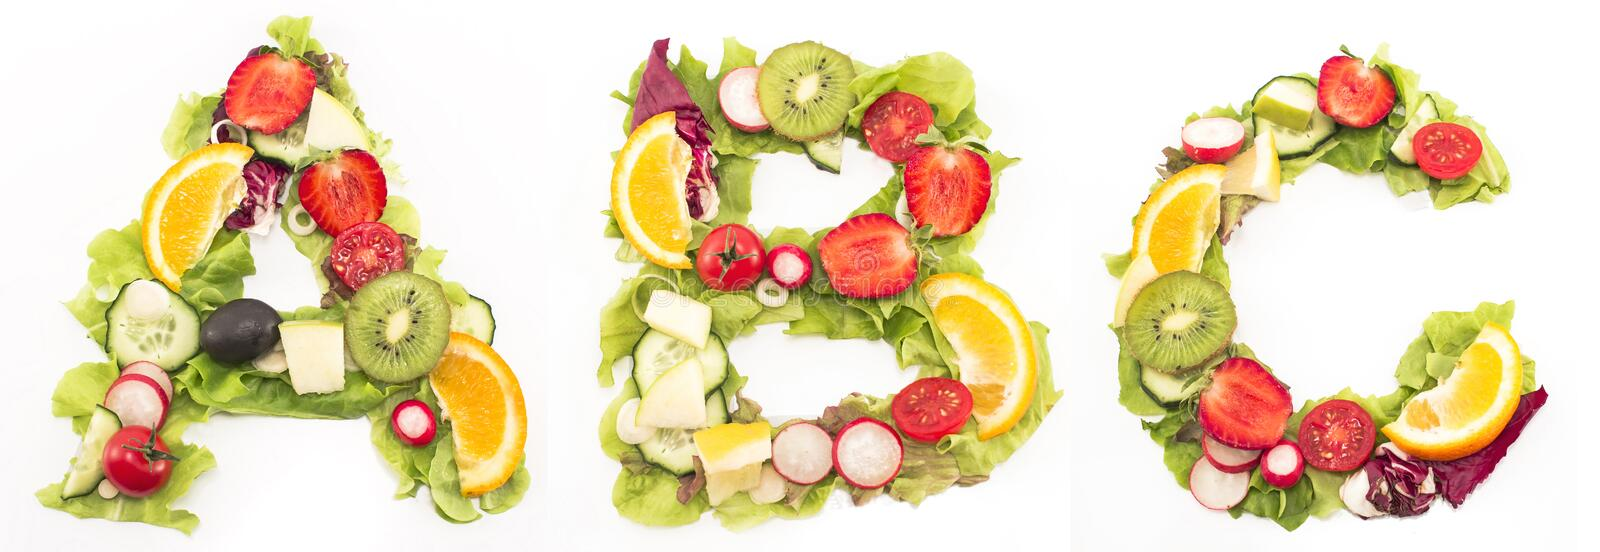 Alphabet healthy food made of salad and fruits stock photography